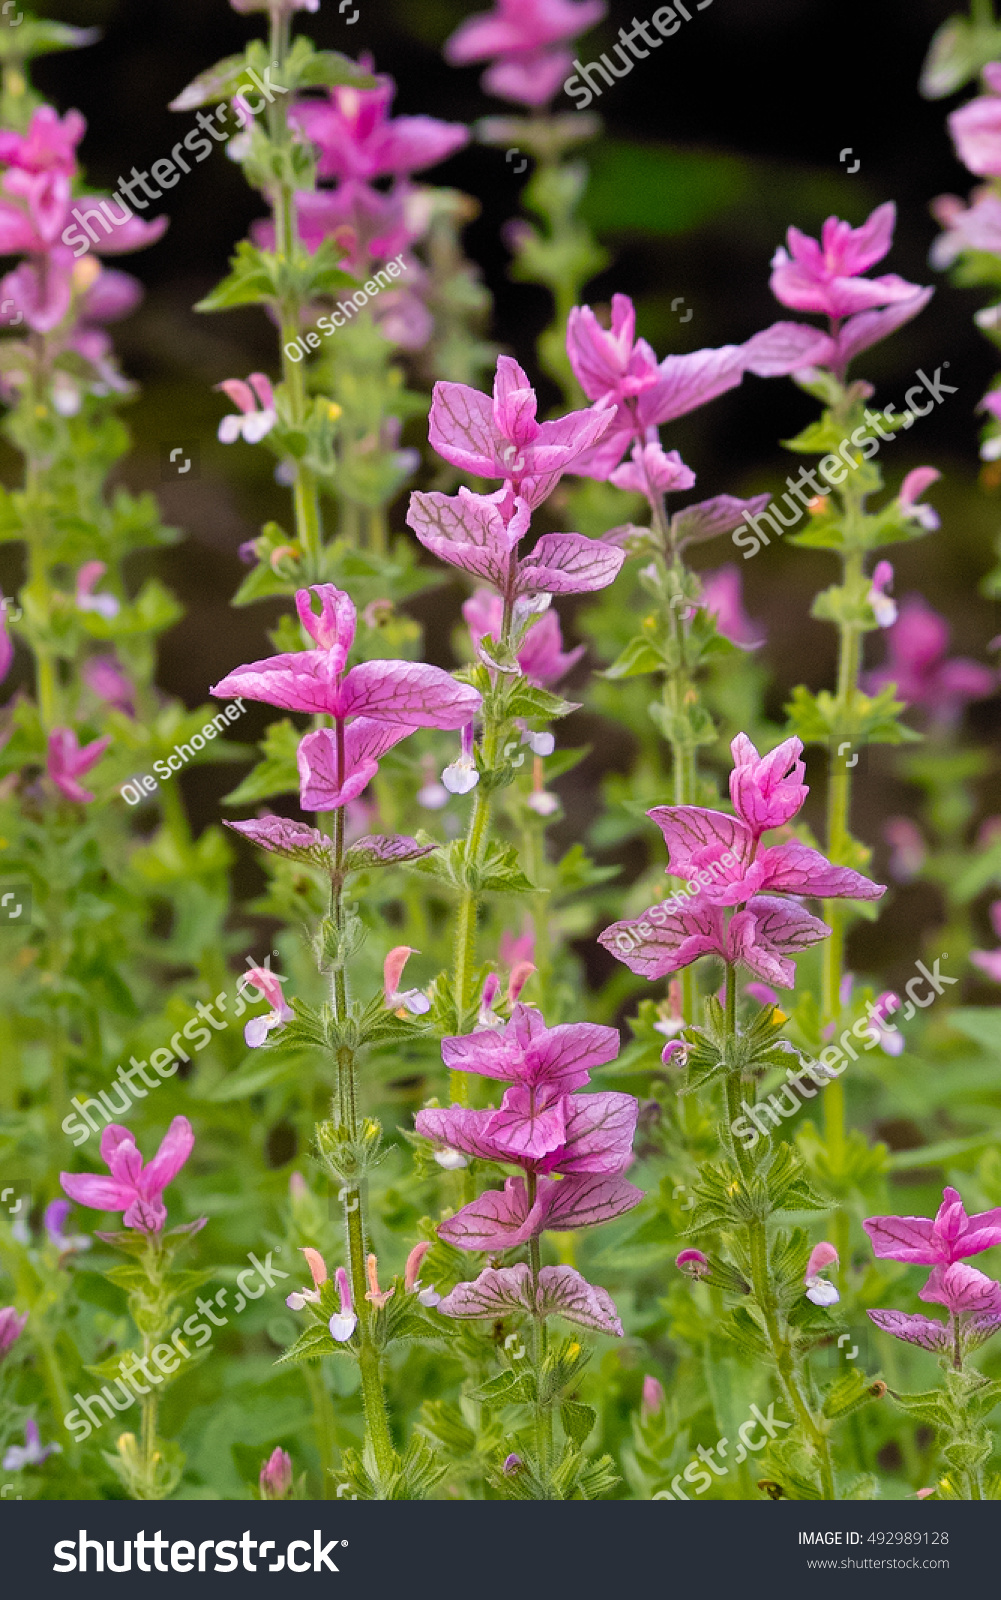 Blooming Field Pink Flowers Green Topped Sage Stock Photo Royalty